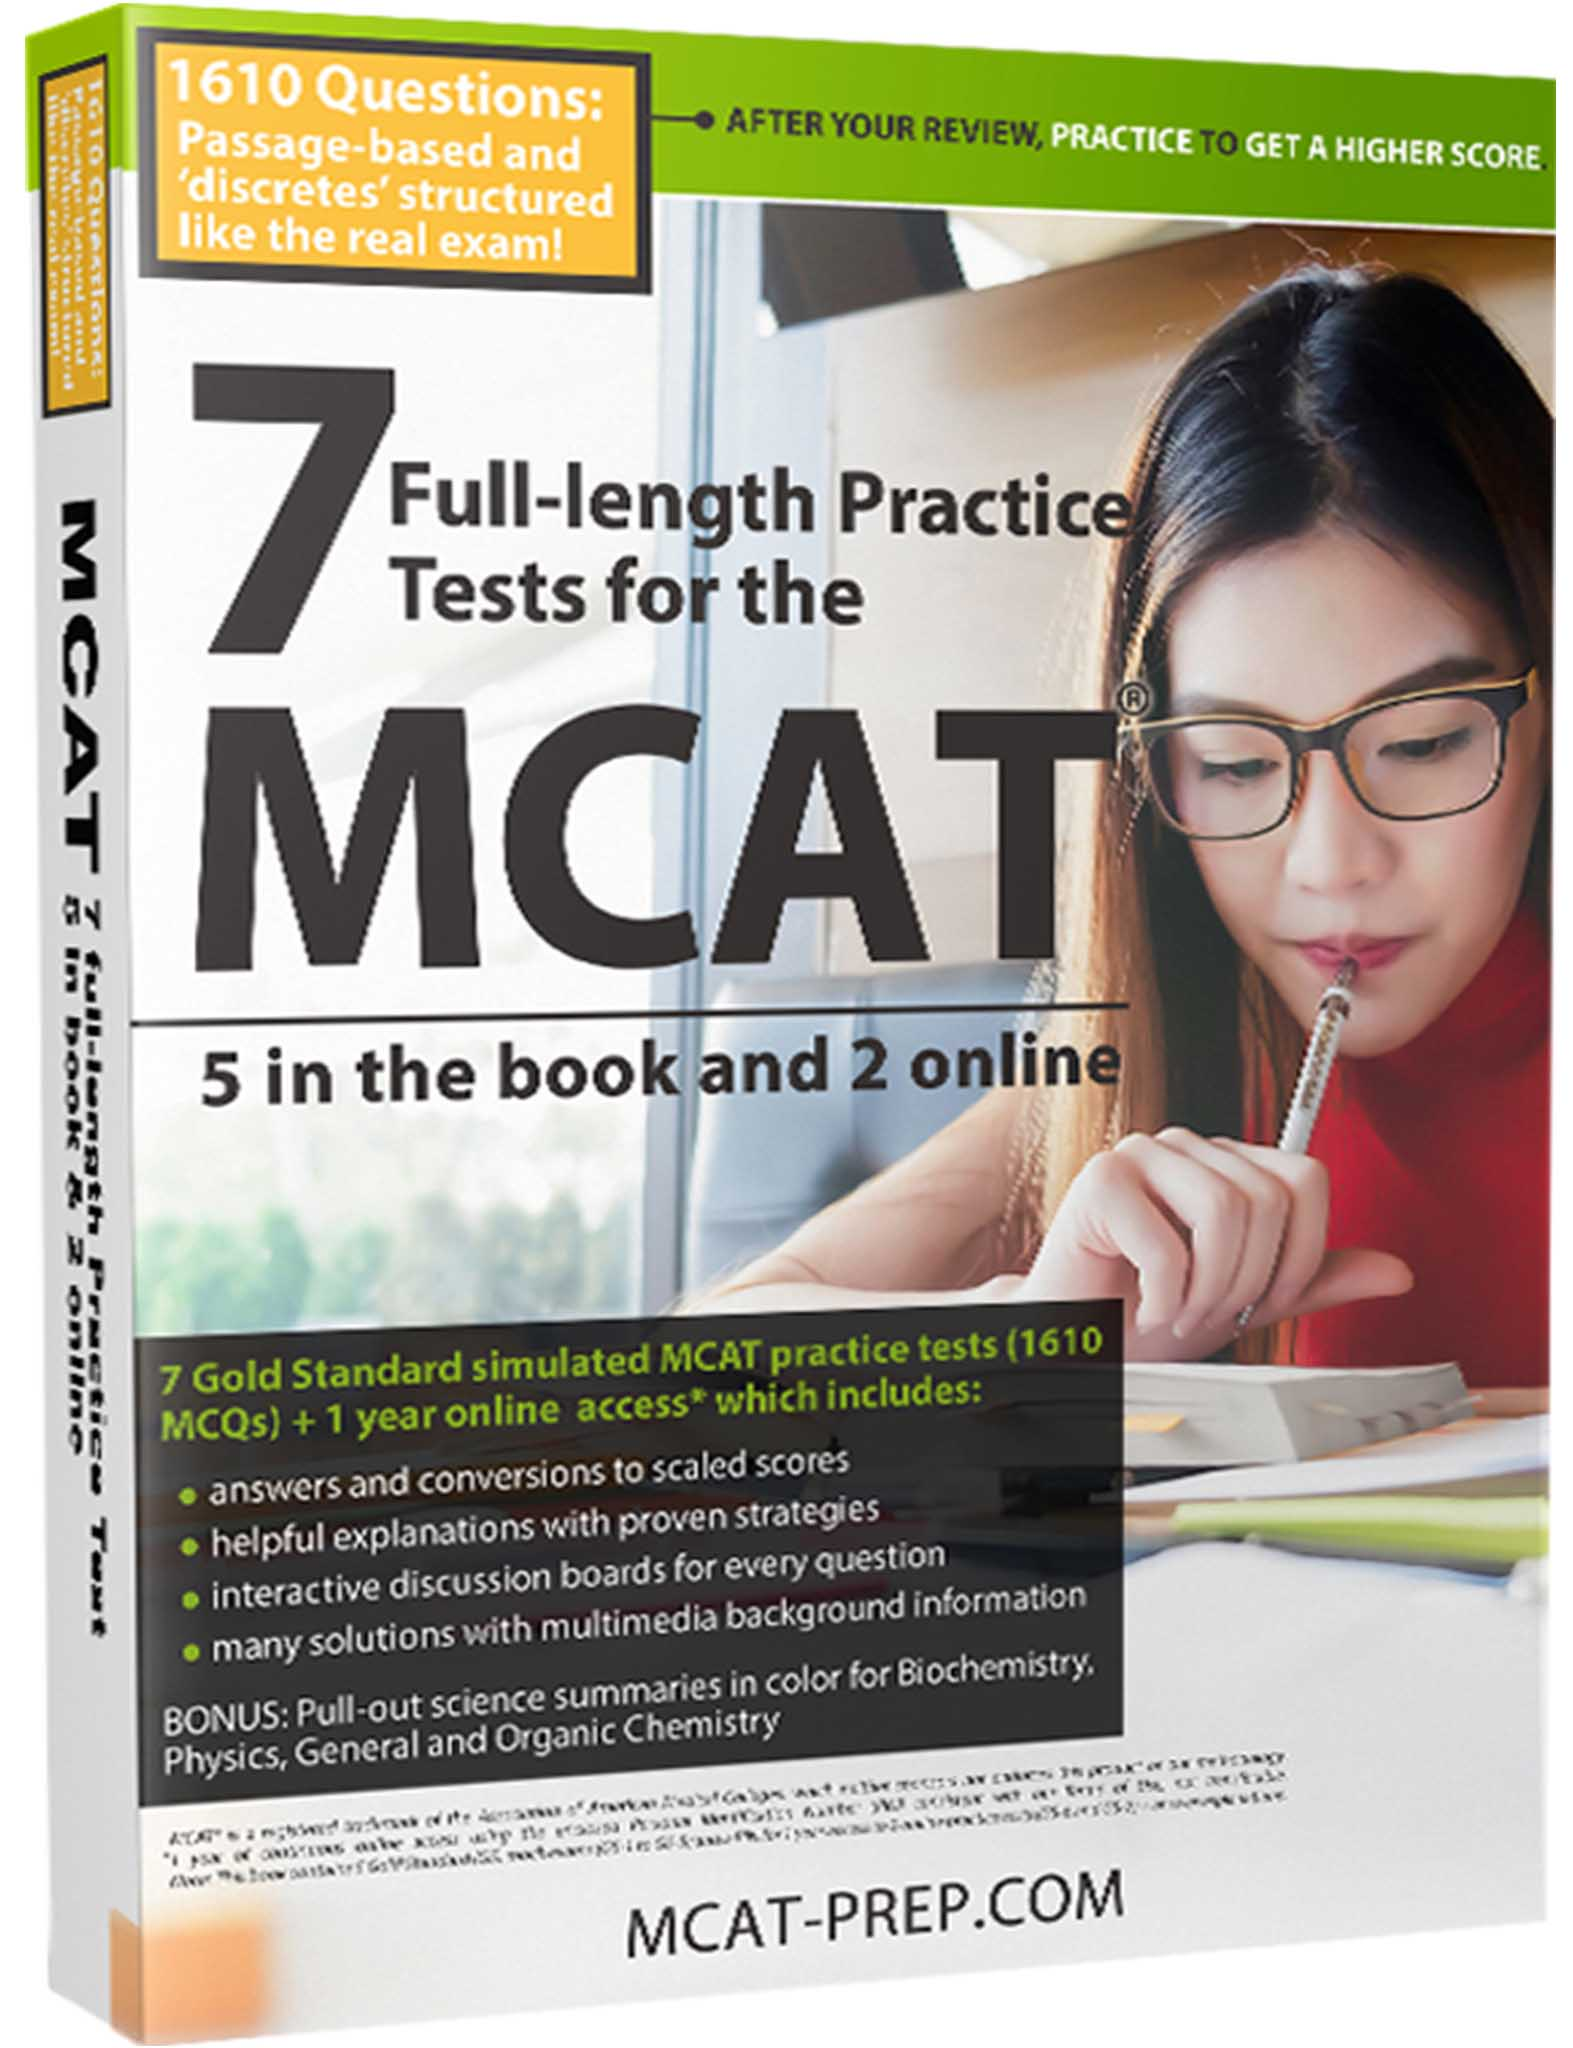 MCAT practice questions book for all MCAT topics